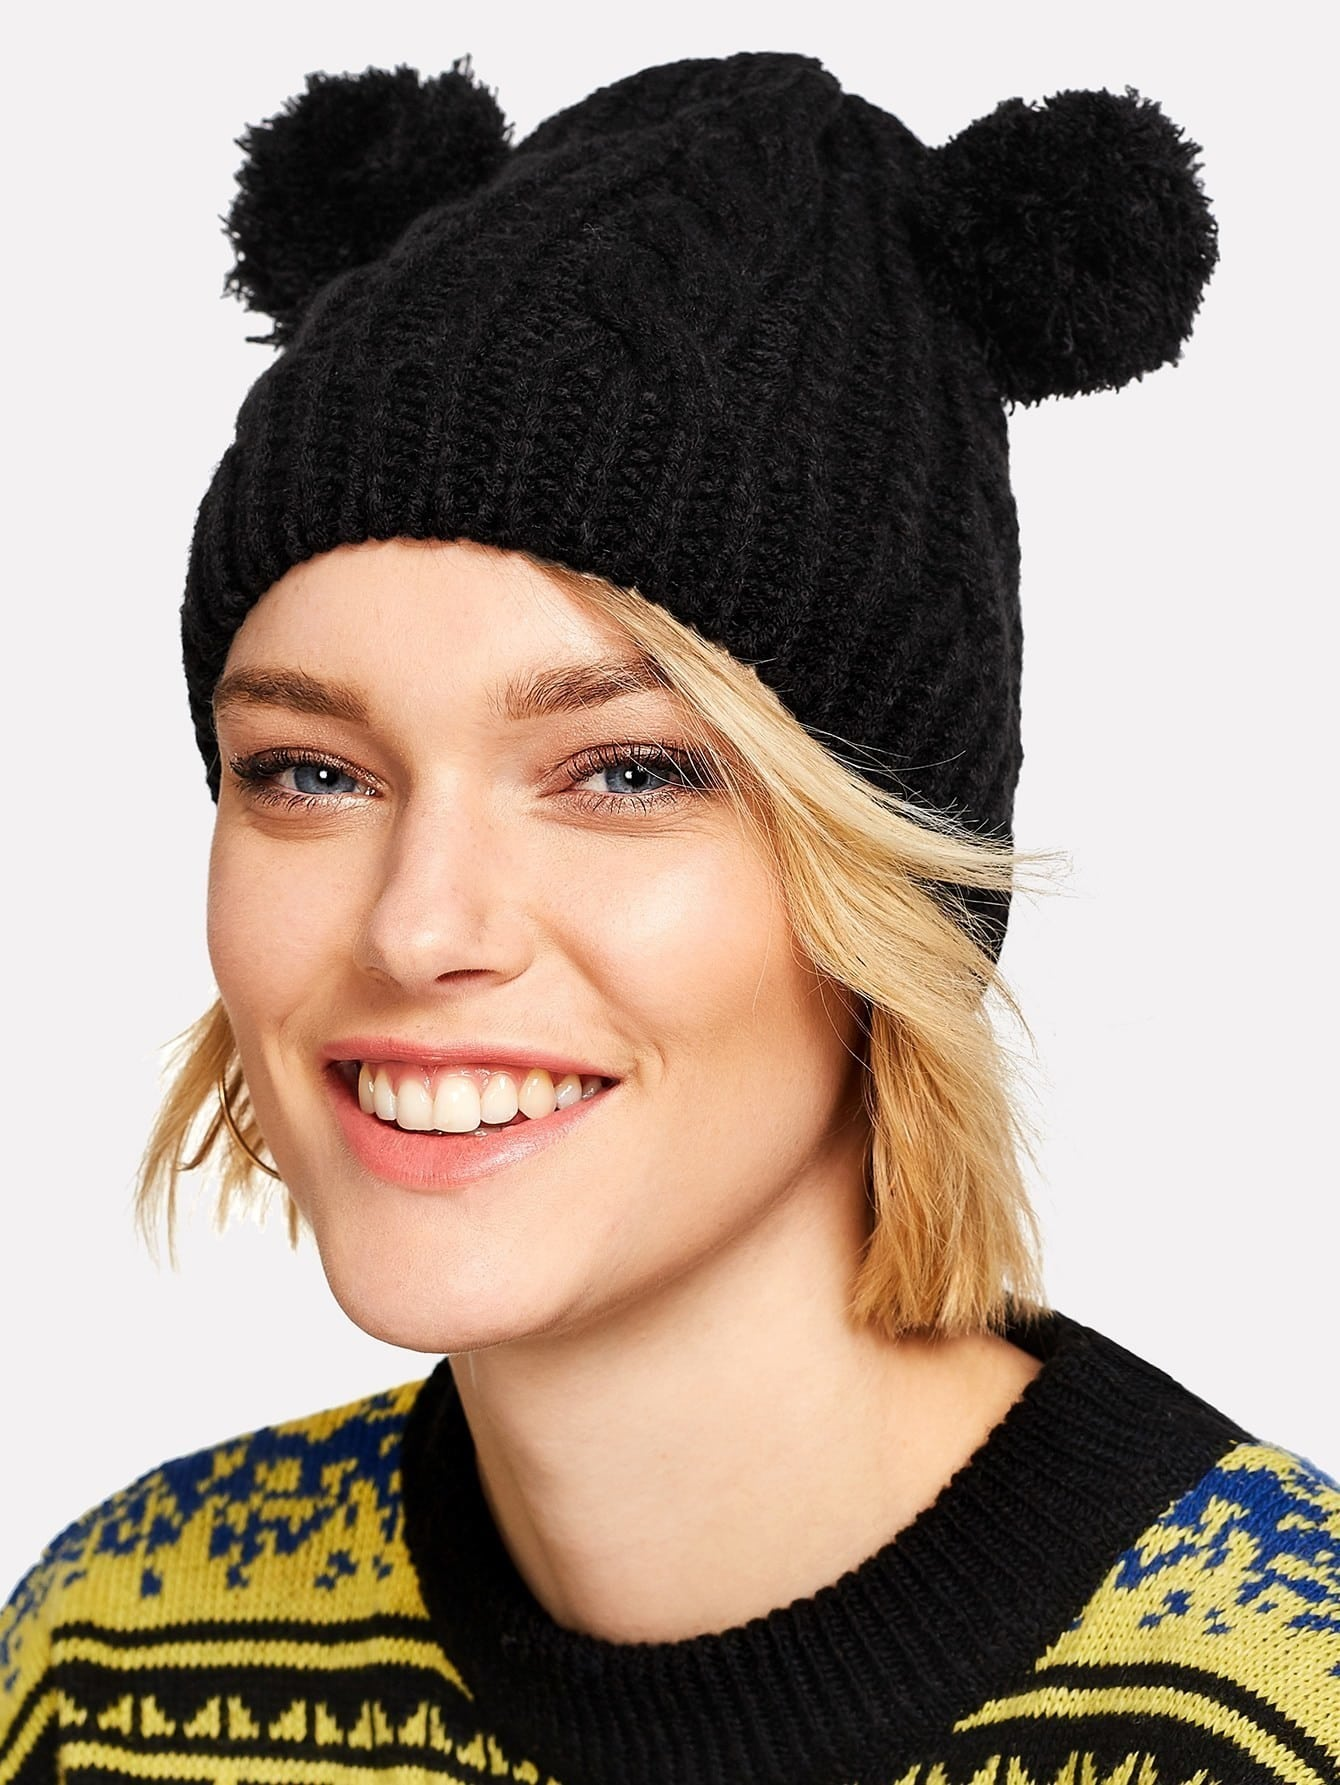 Pom Pom Ear Knit Beanie Hat